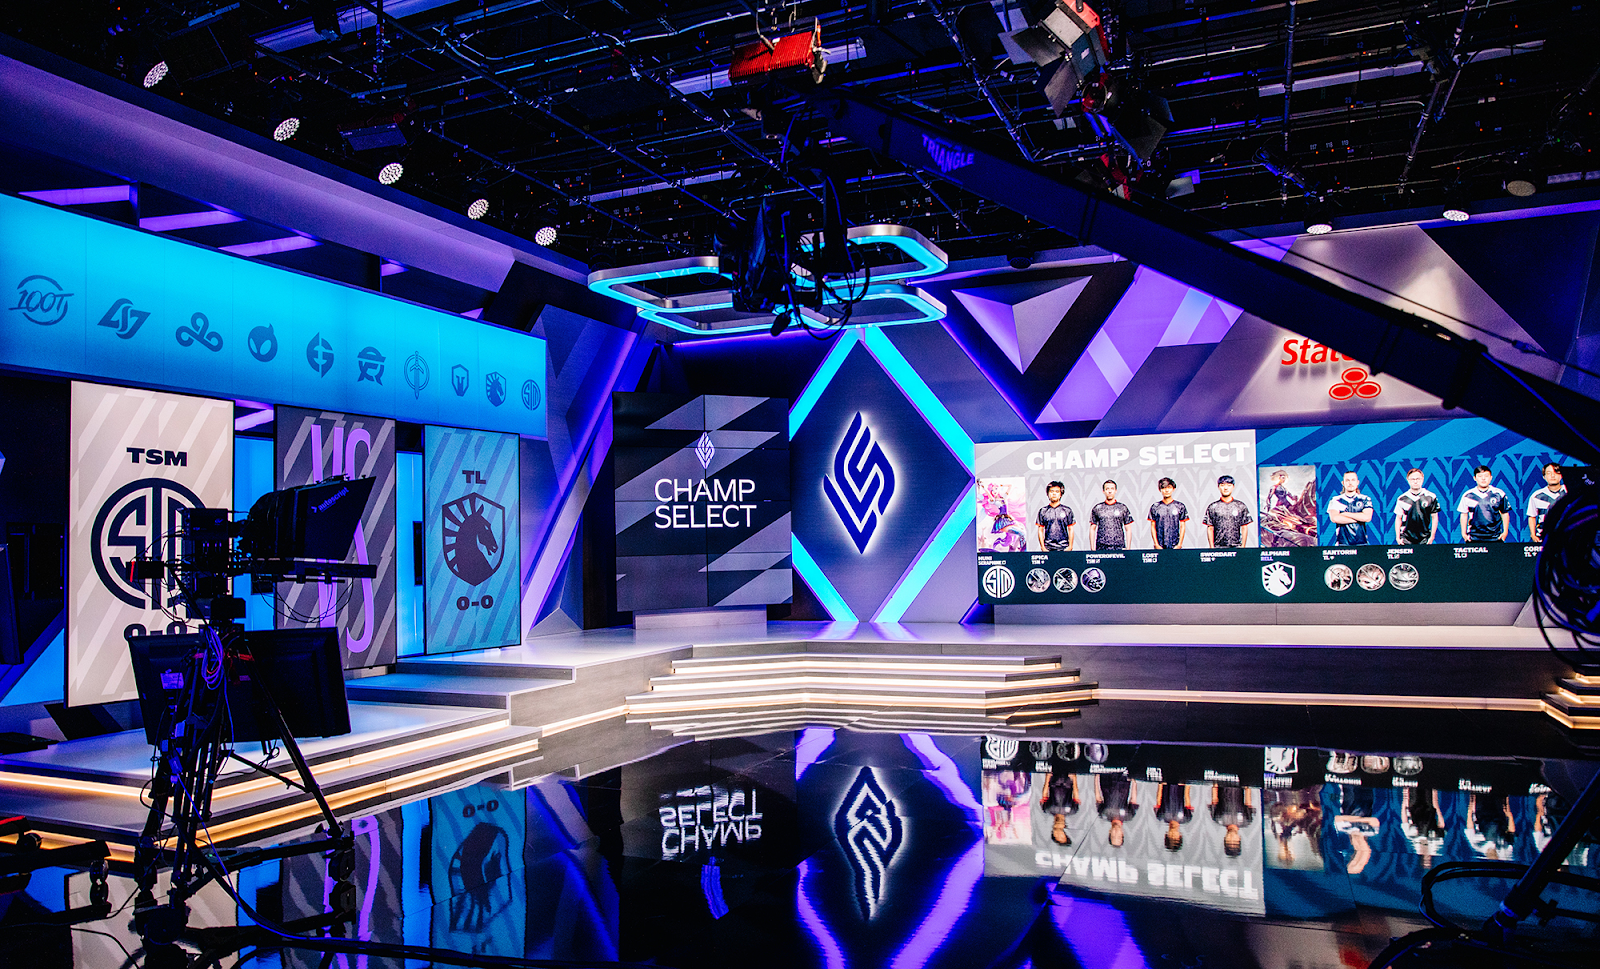 lcs arena